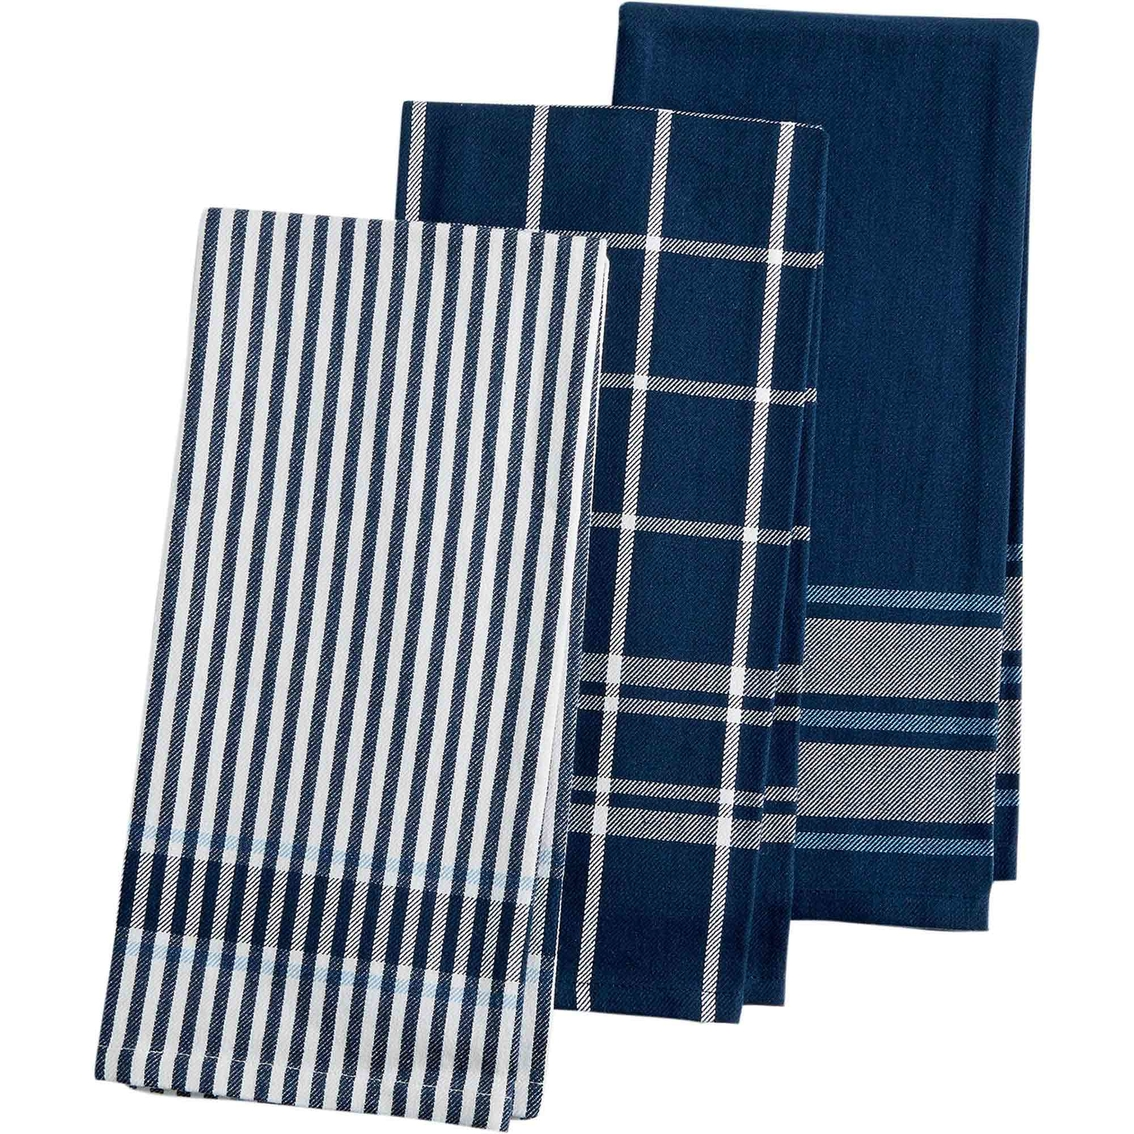 Martha Stewart Collection 3 Pc. Jacquard Striped Cotton ...